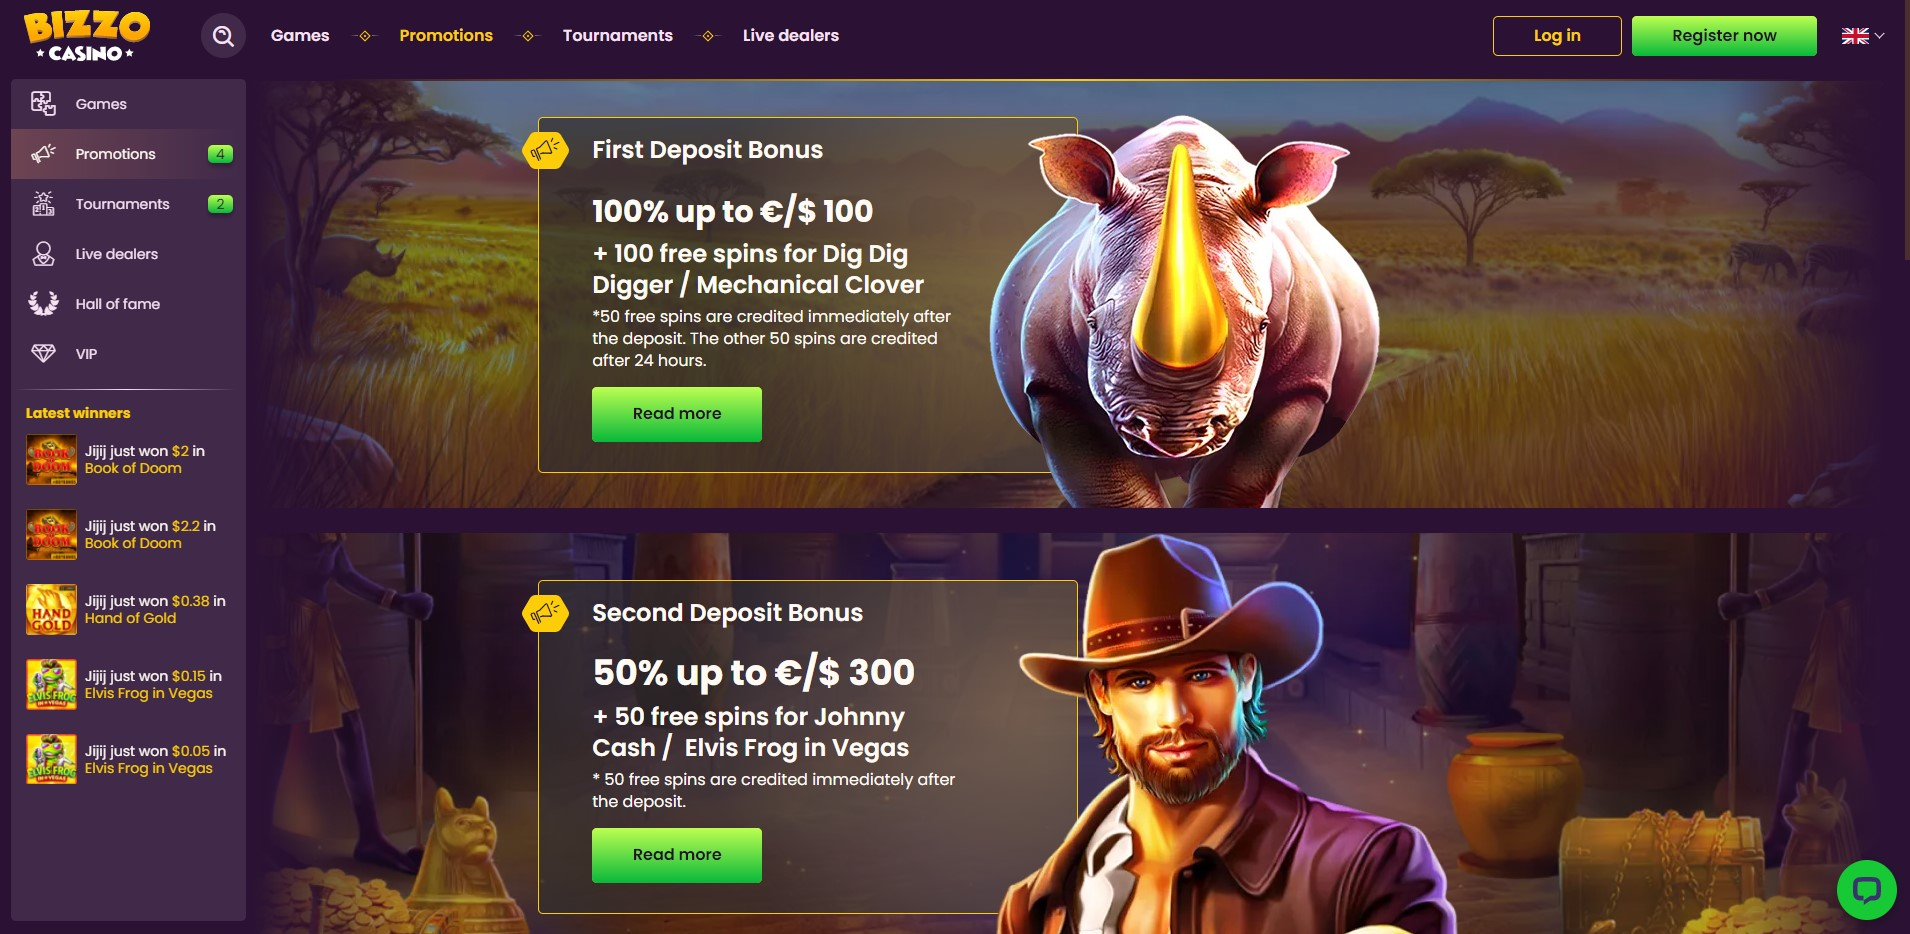 Promotions at Bizzo Casino